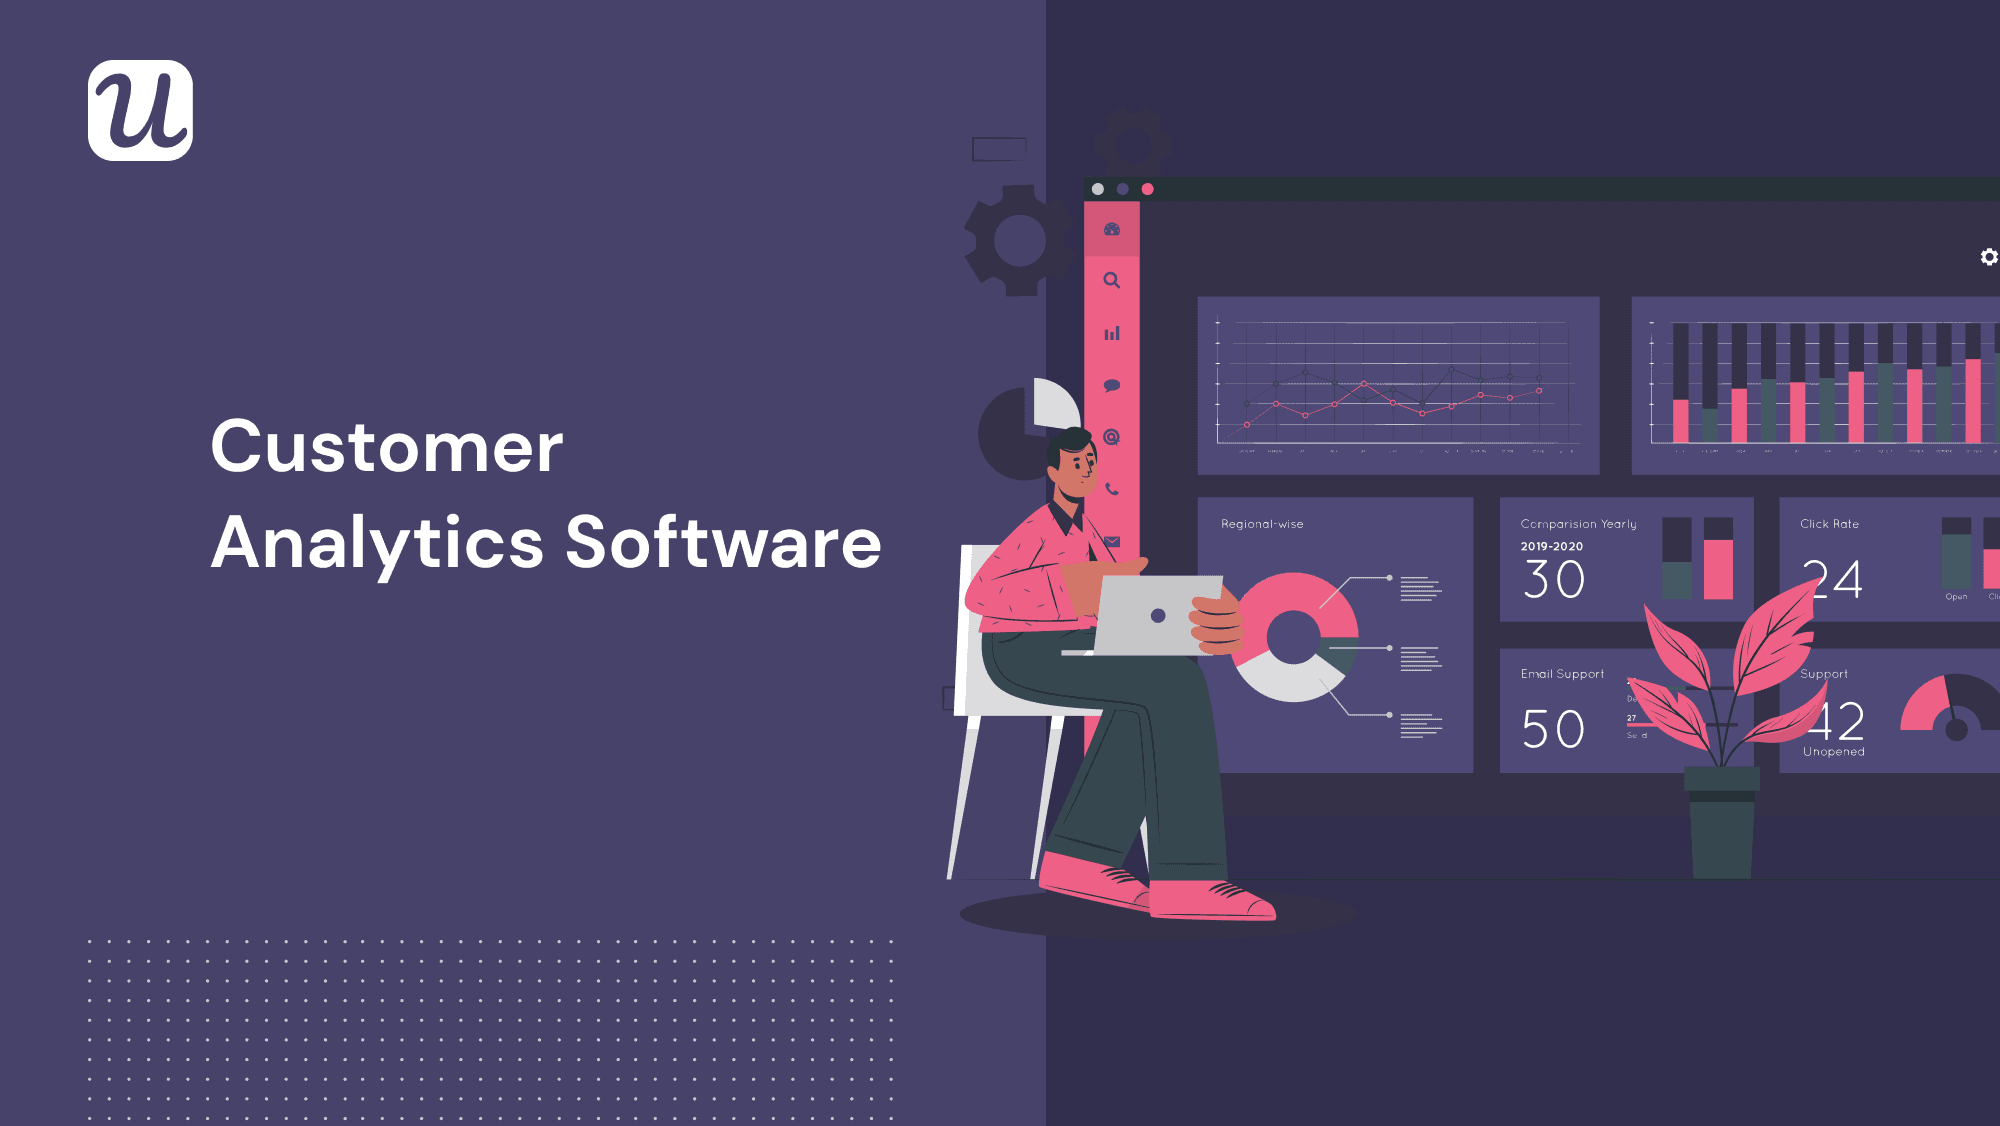 Top 4 Customer Analytics Software Solutions for SaaS businesses